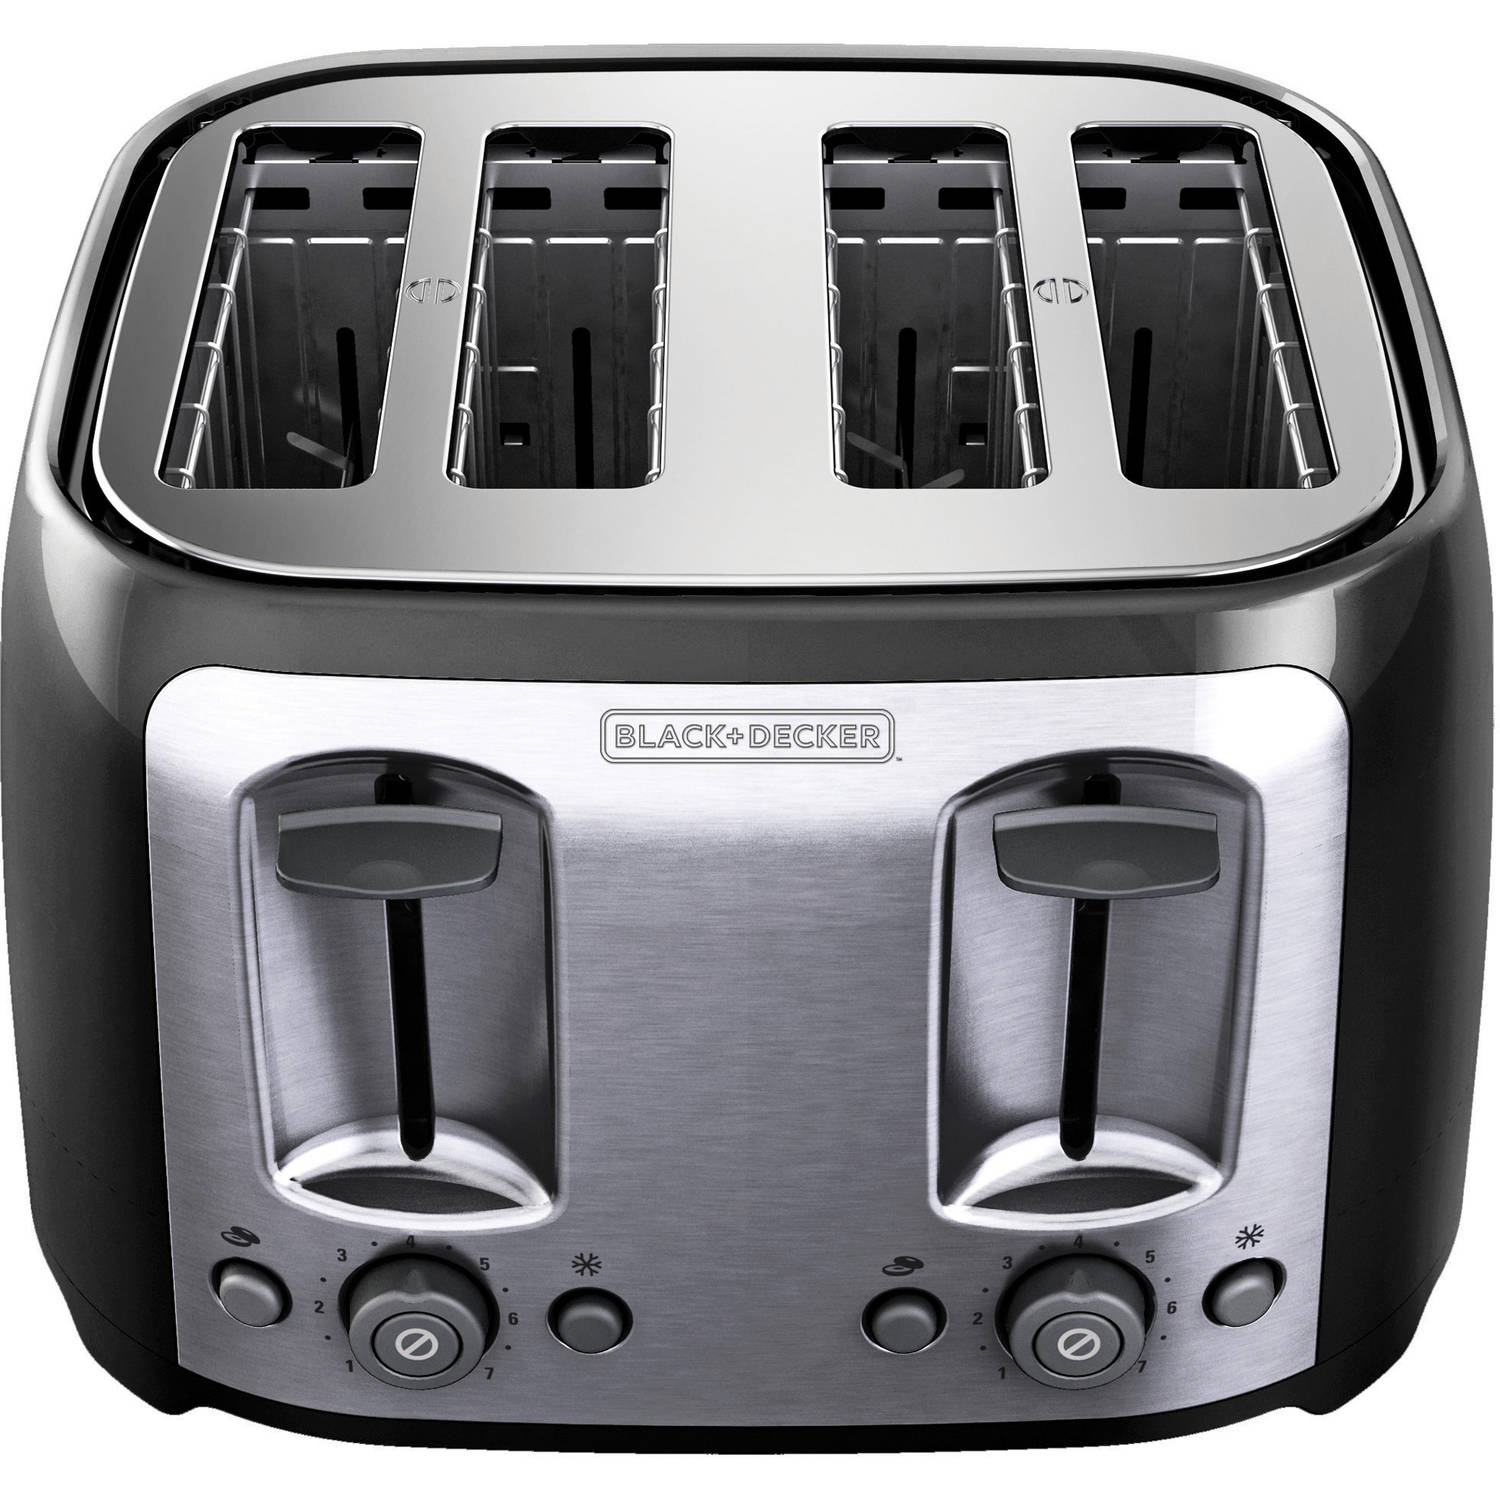 BLACK+DECKER 4-Slice Multi-Function Toaster, Bagel Toaster, Black TR1478BD by Black & Decker